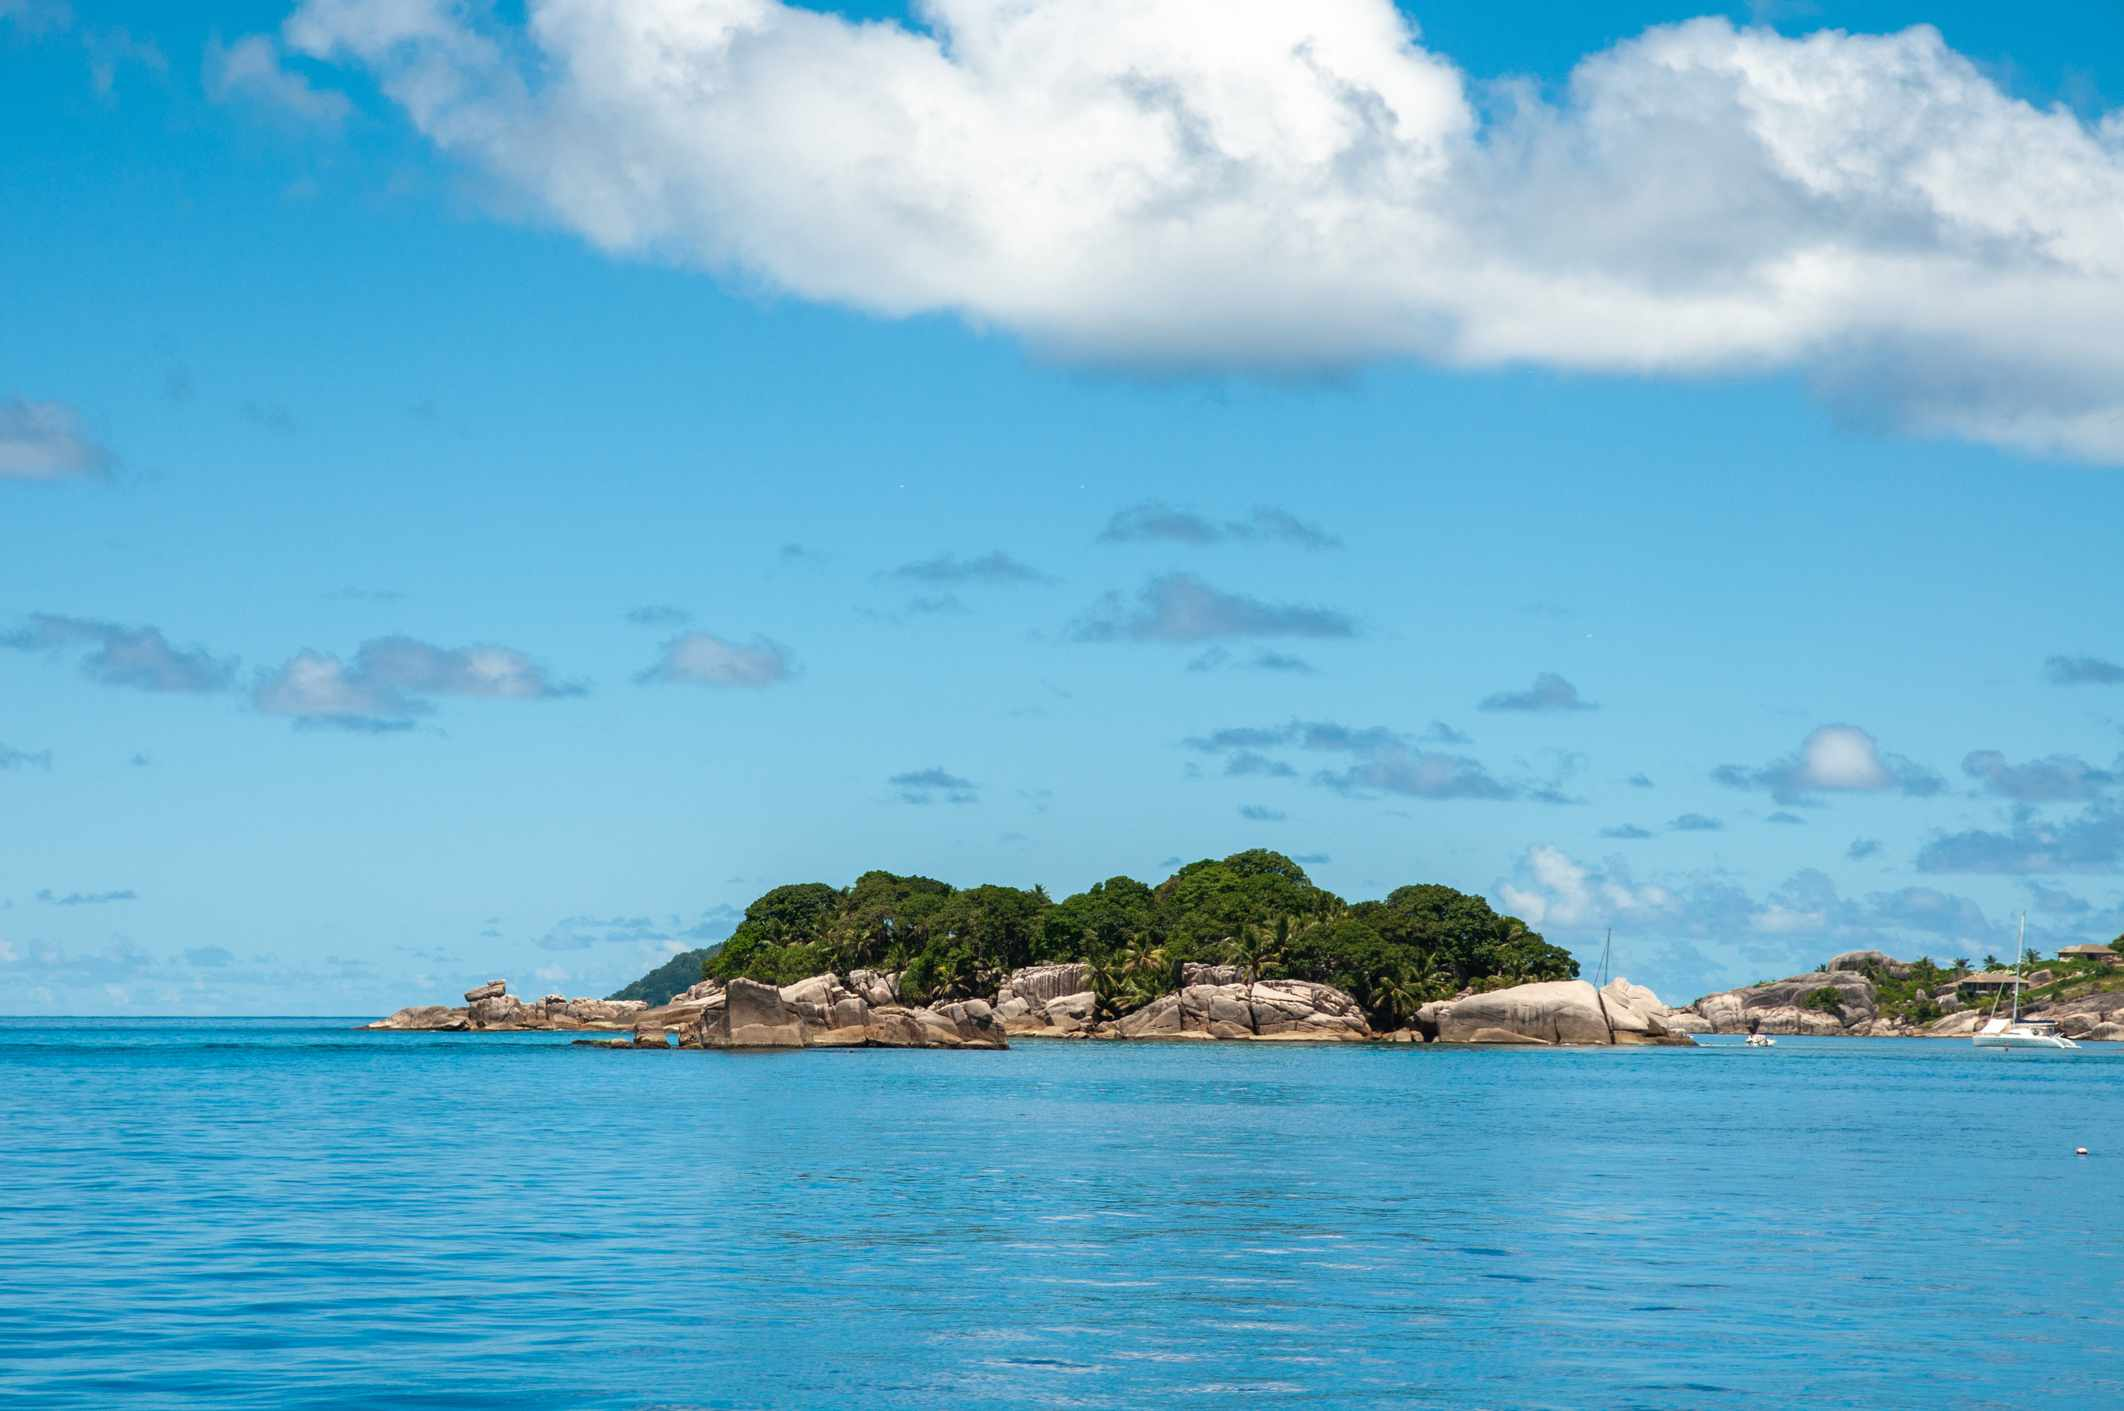 Seaview of the Ile Cocos marine National Park (Cocos Island)